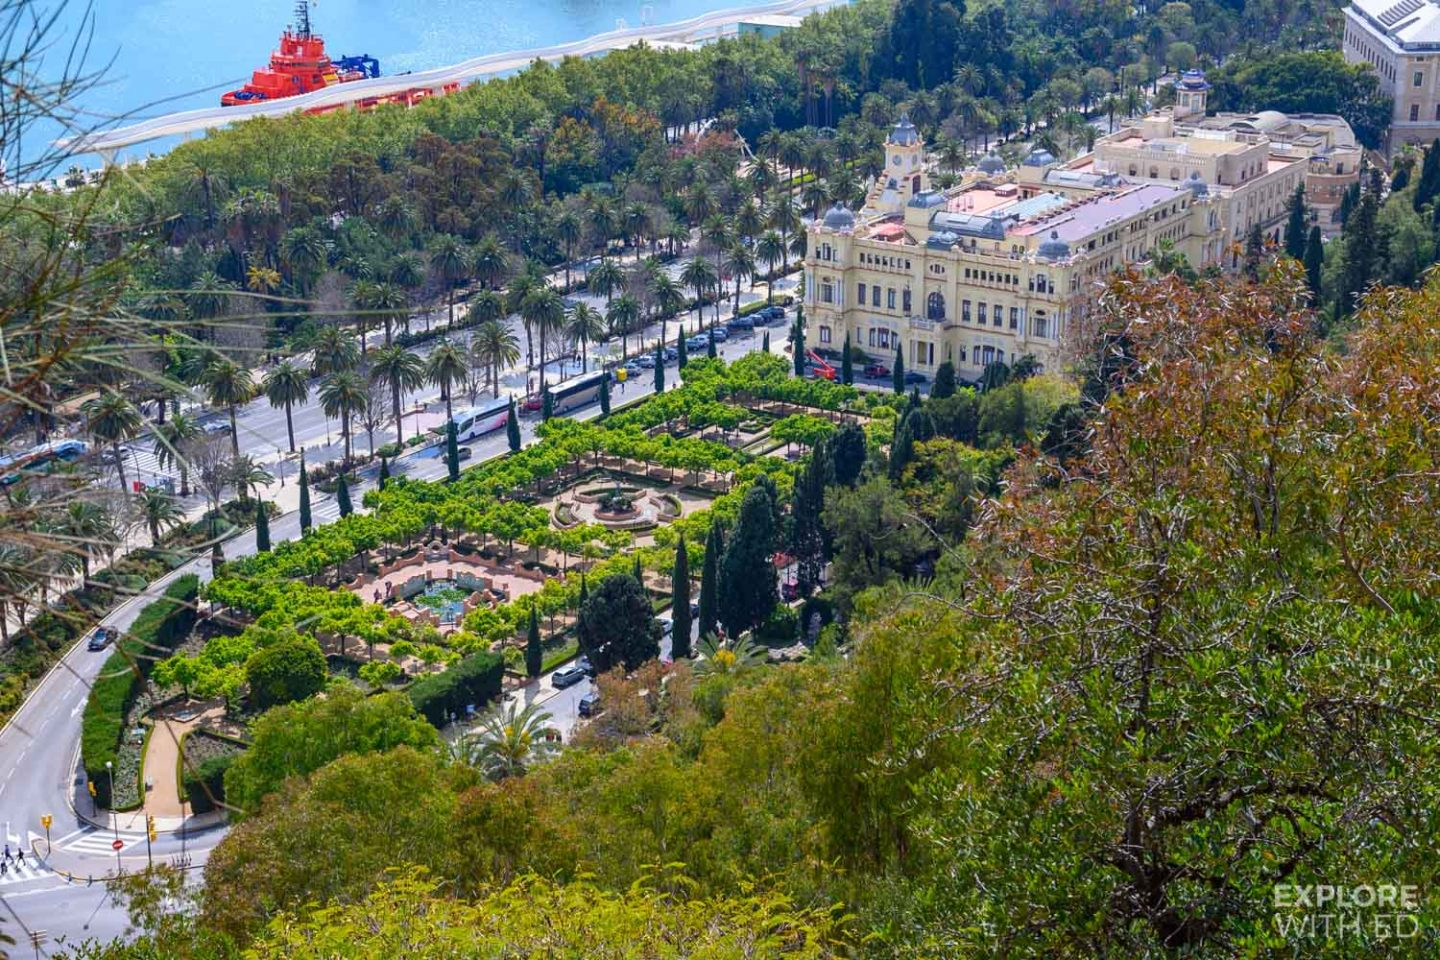 View of the gardens of Pedro Luis Alonso and town hall in Malaga